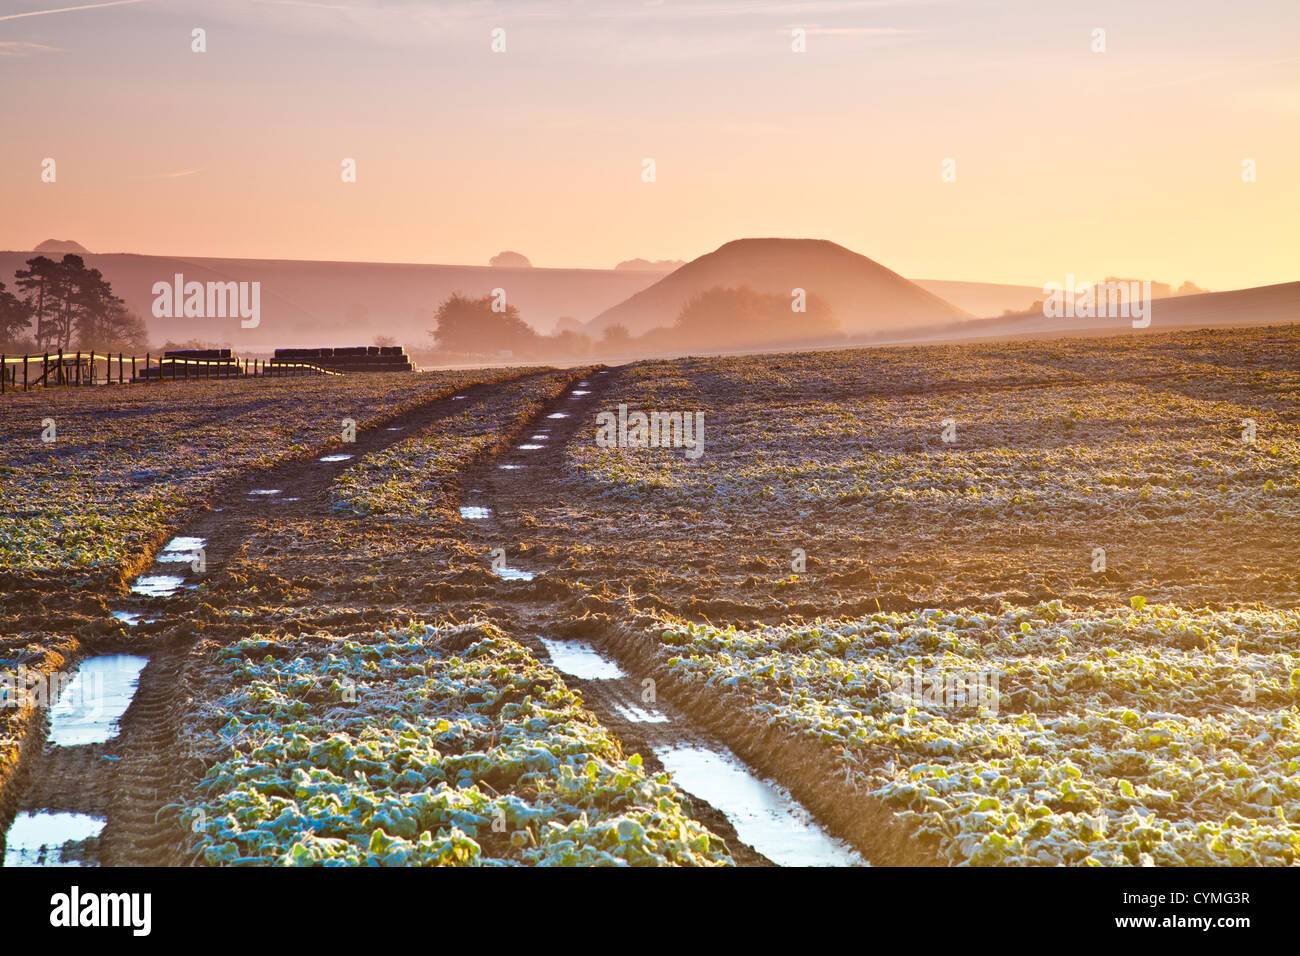 Frosty autumnal sunrise over Wiltshire countryside landscape with iconic neolithic Silbury Hill in the distance - Stock Image